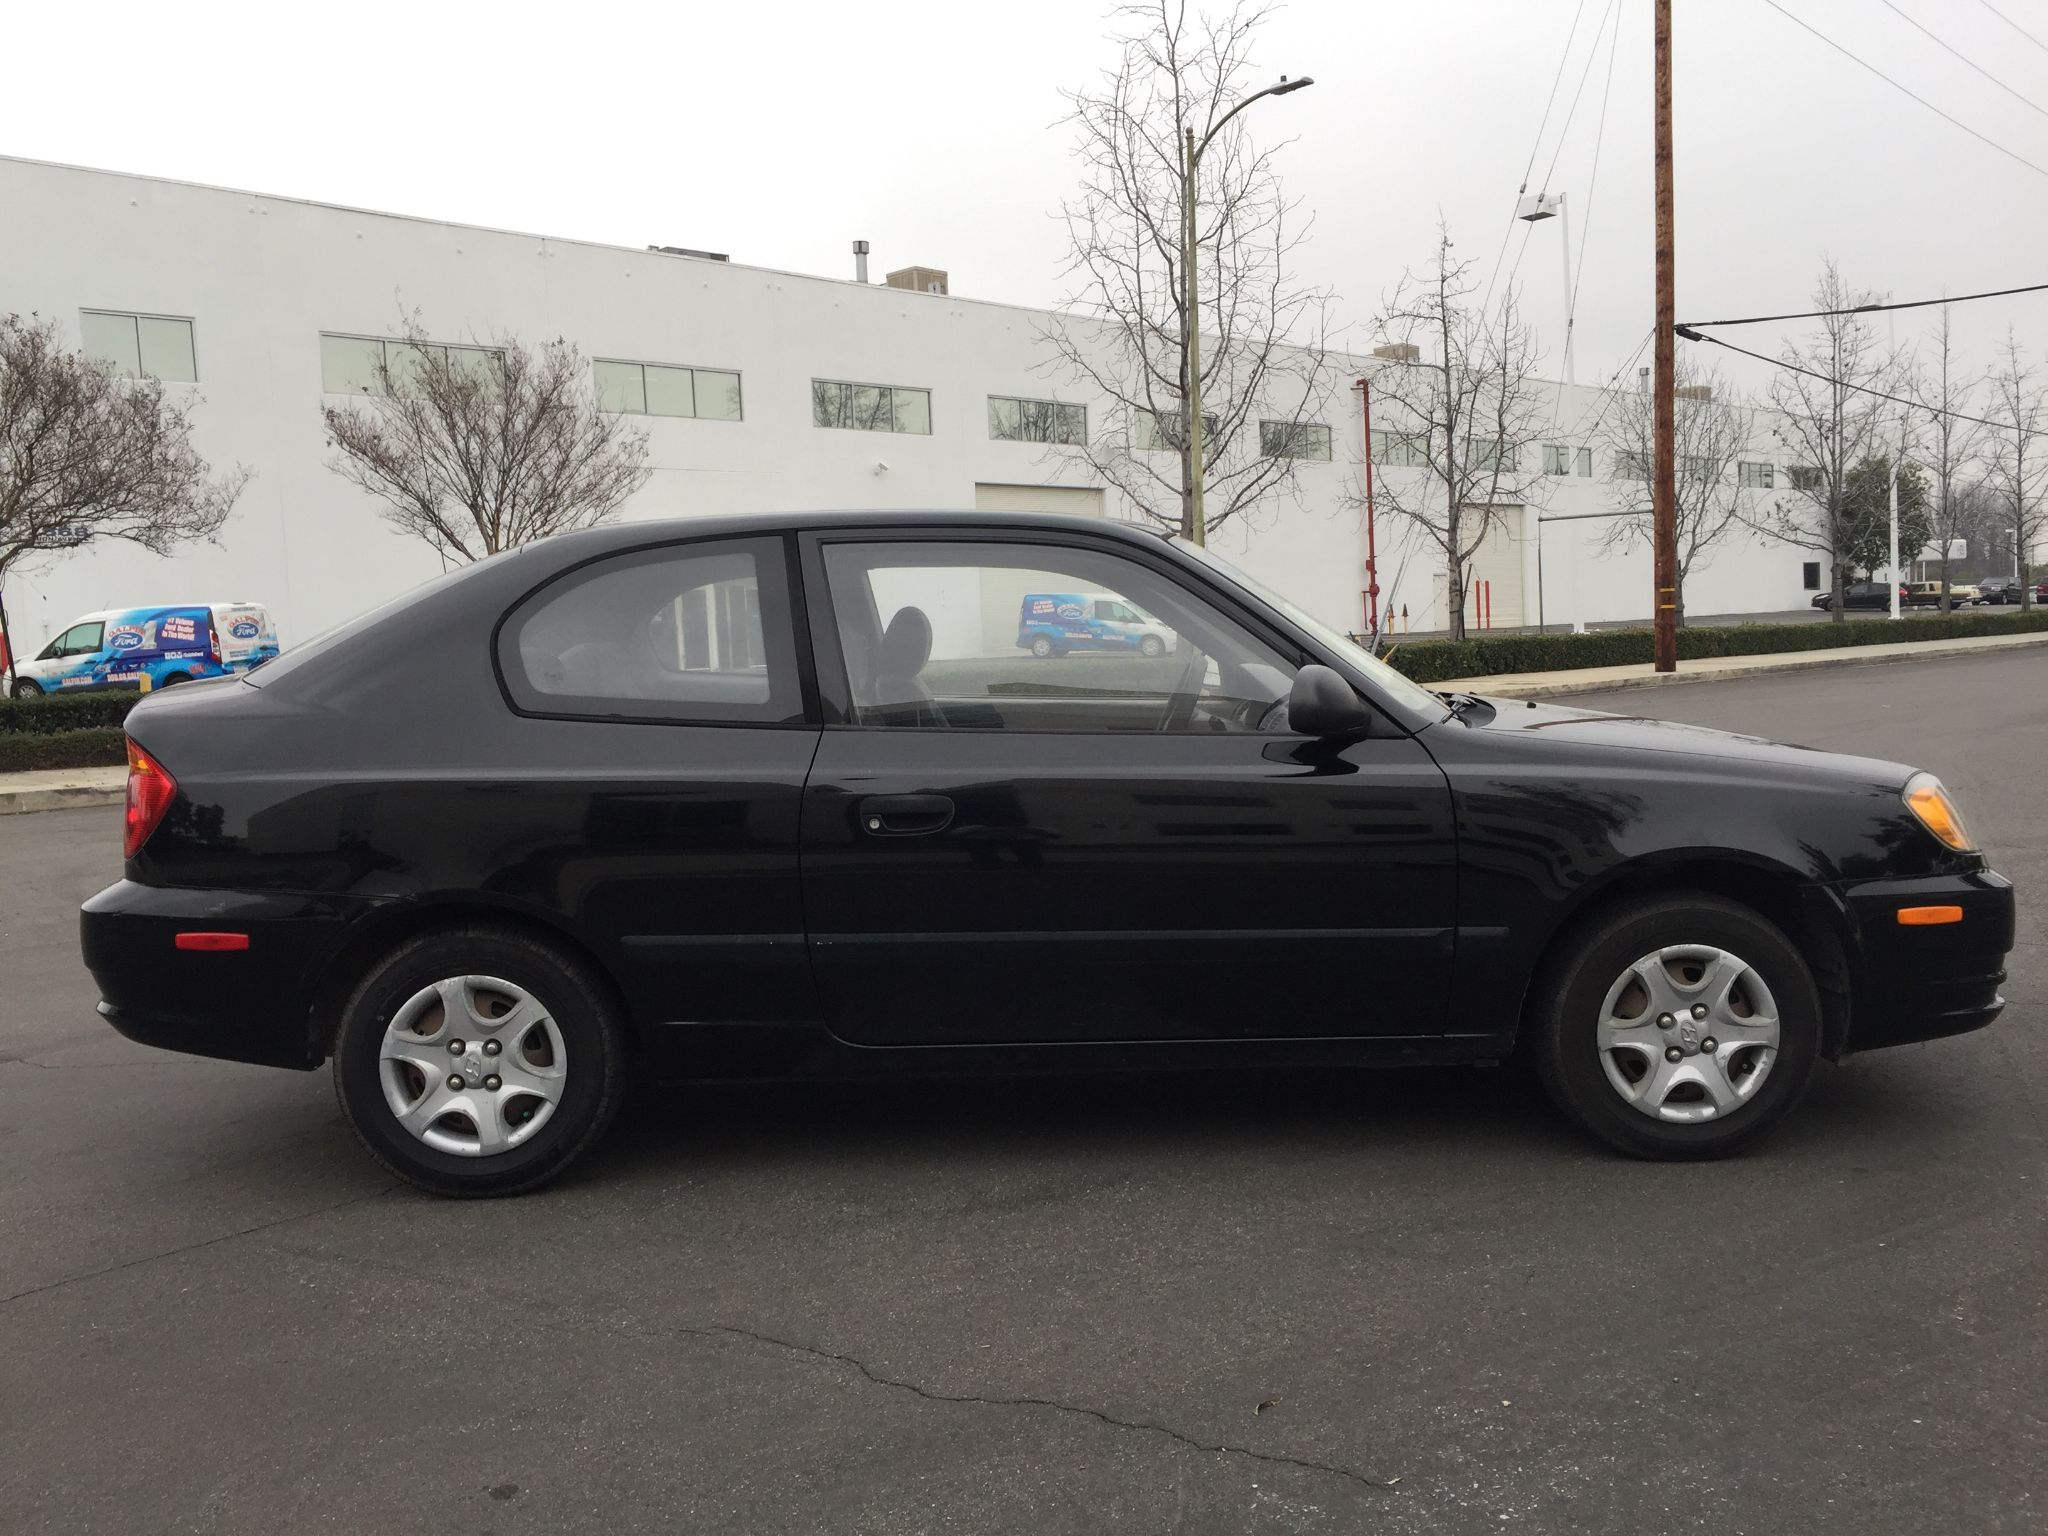 Used 2003 Hyundai Accent 1 8 TURBO at City Cars Warehouse INC